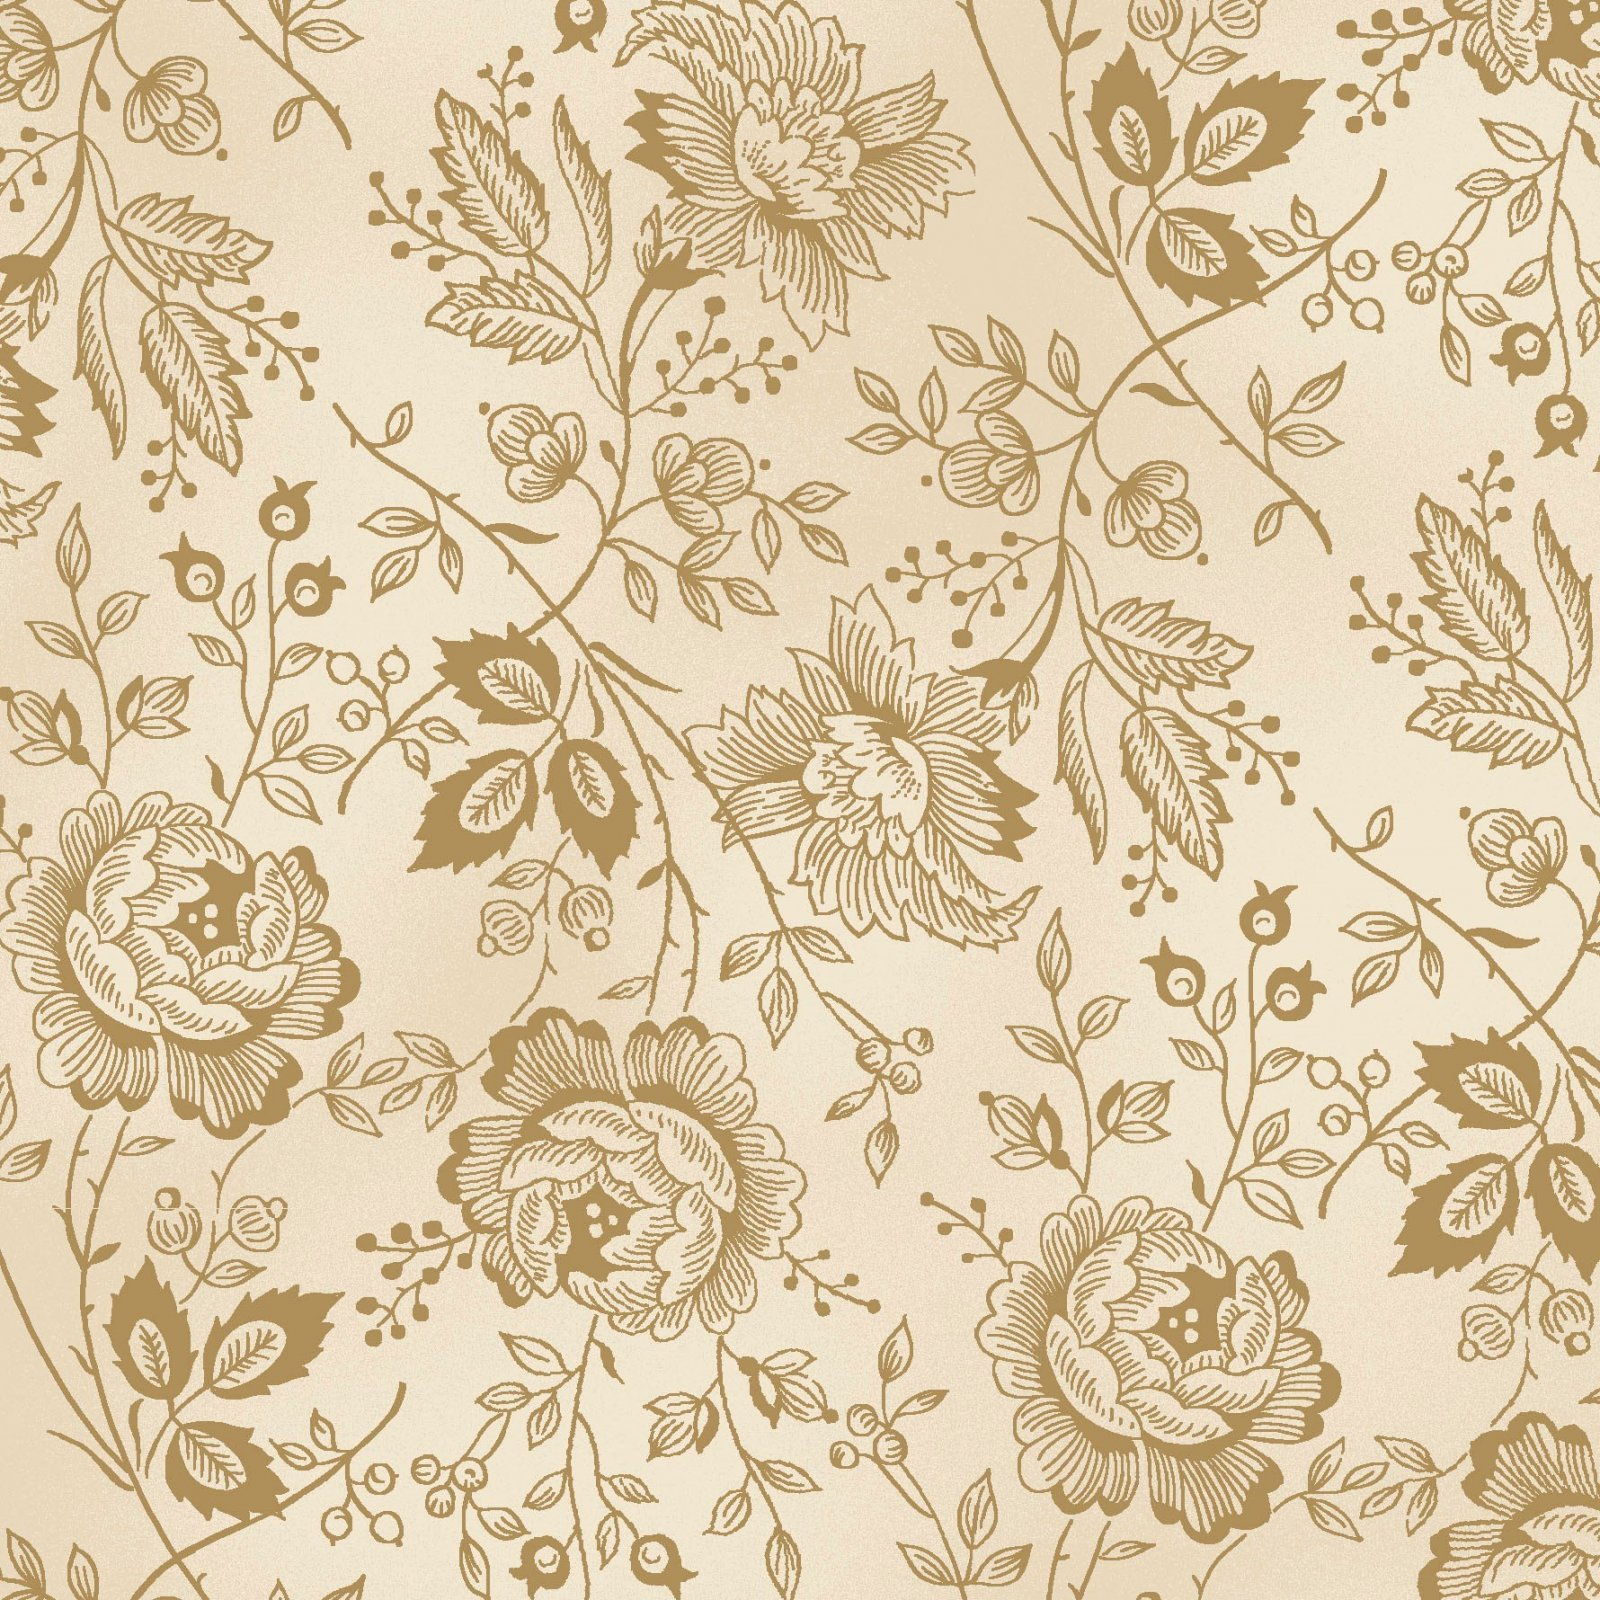 King Quilts Light Tan 110 Wide Back *